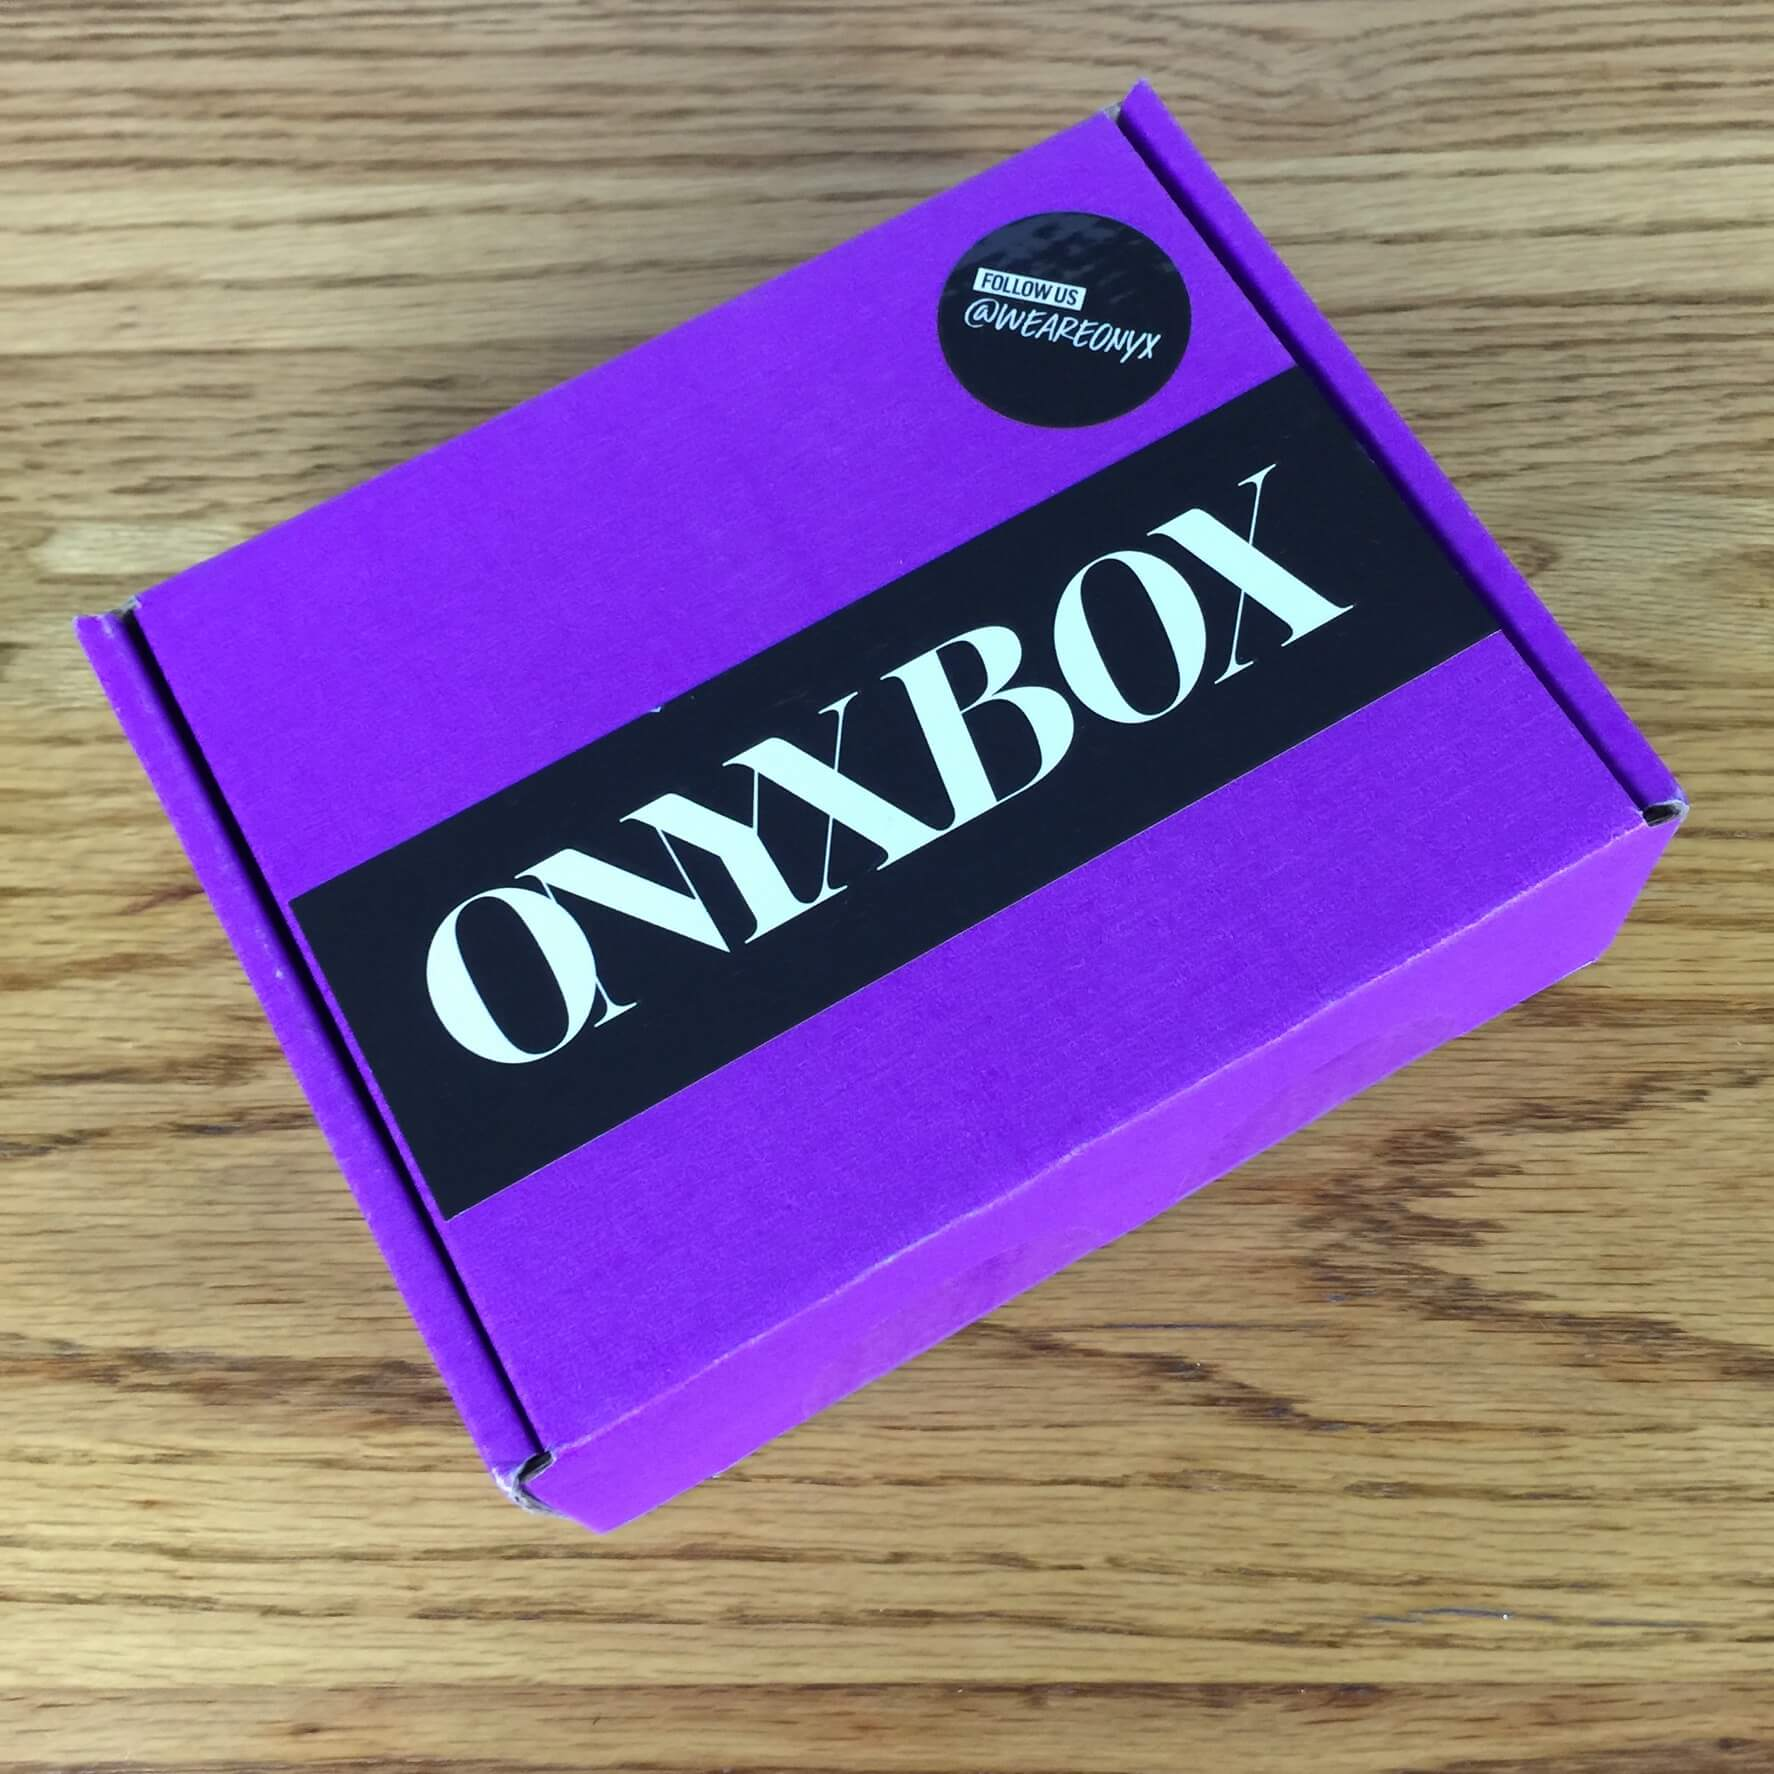 We Are Onyx ONYXBOX September 2016 Subscription Box Review